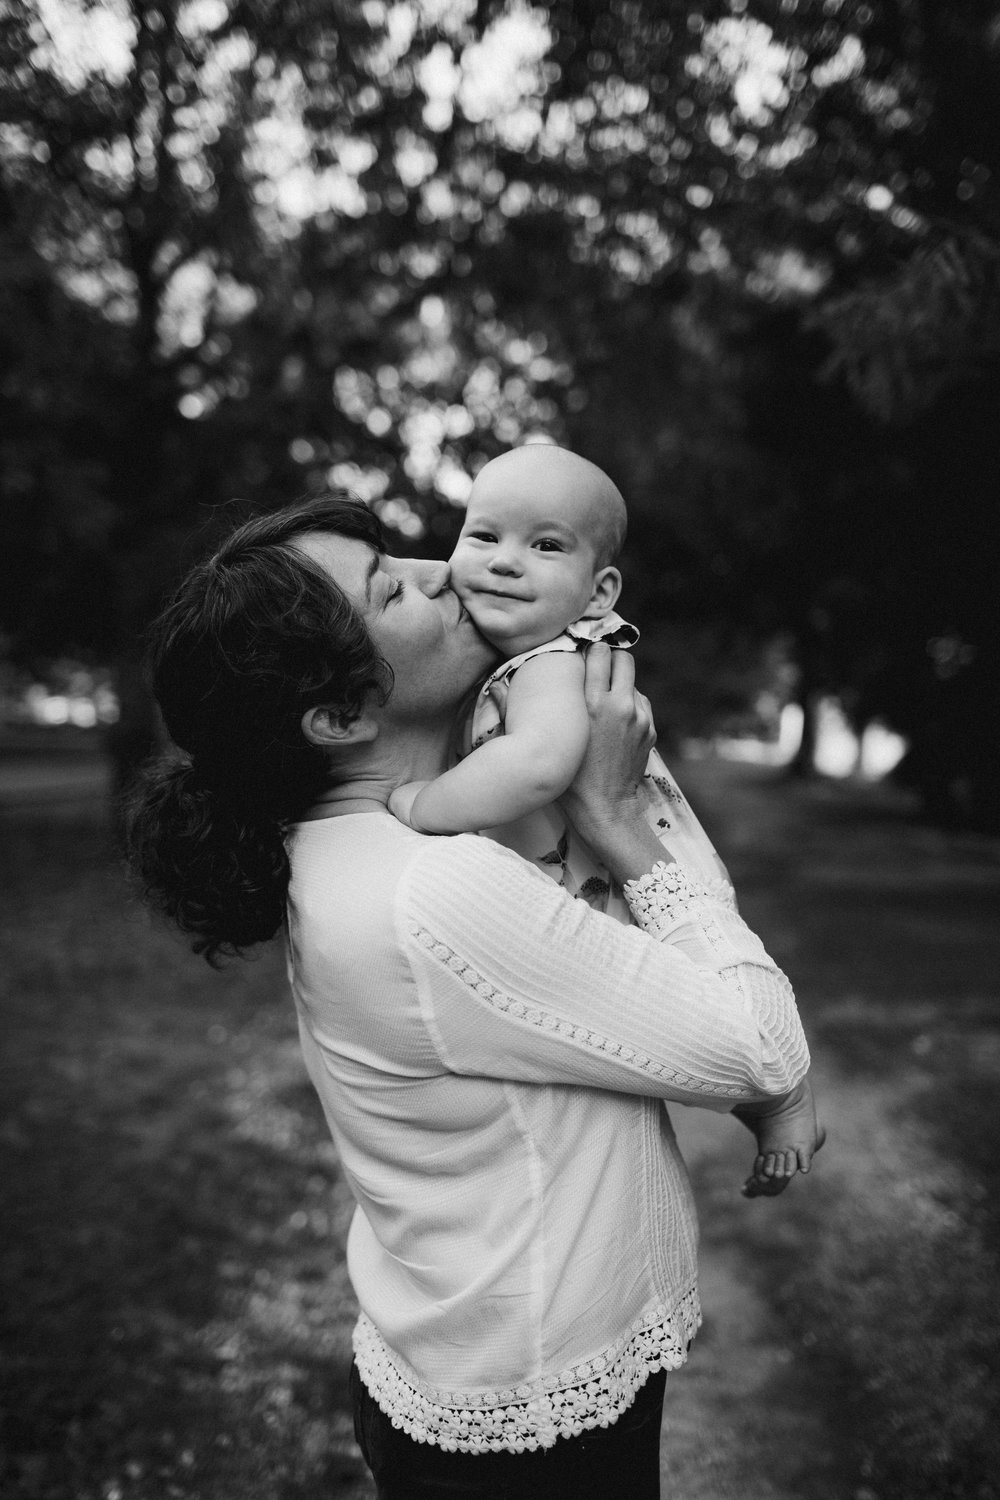 audubon park family shoot-sharon pye-73.jpg